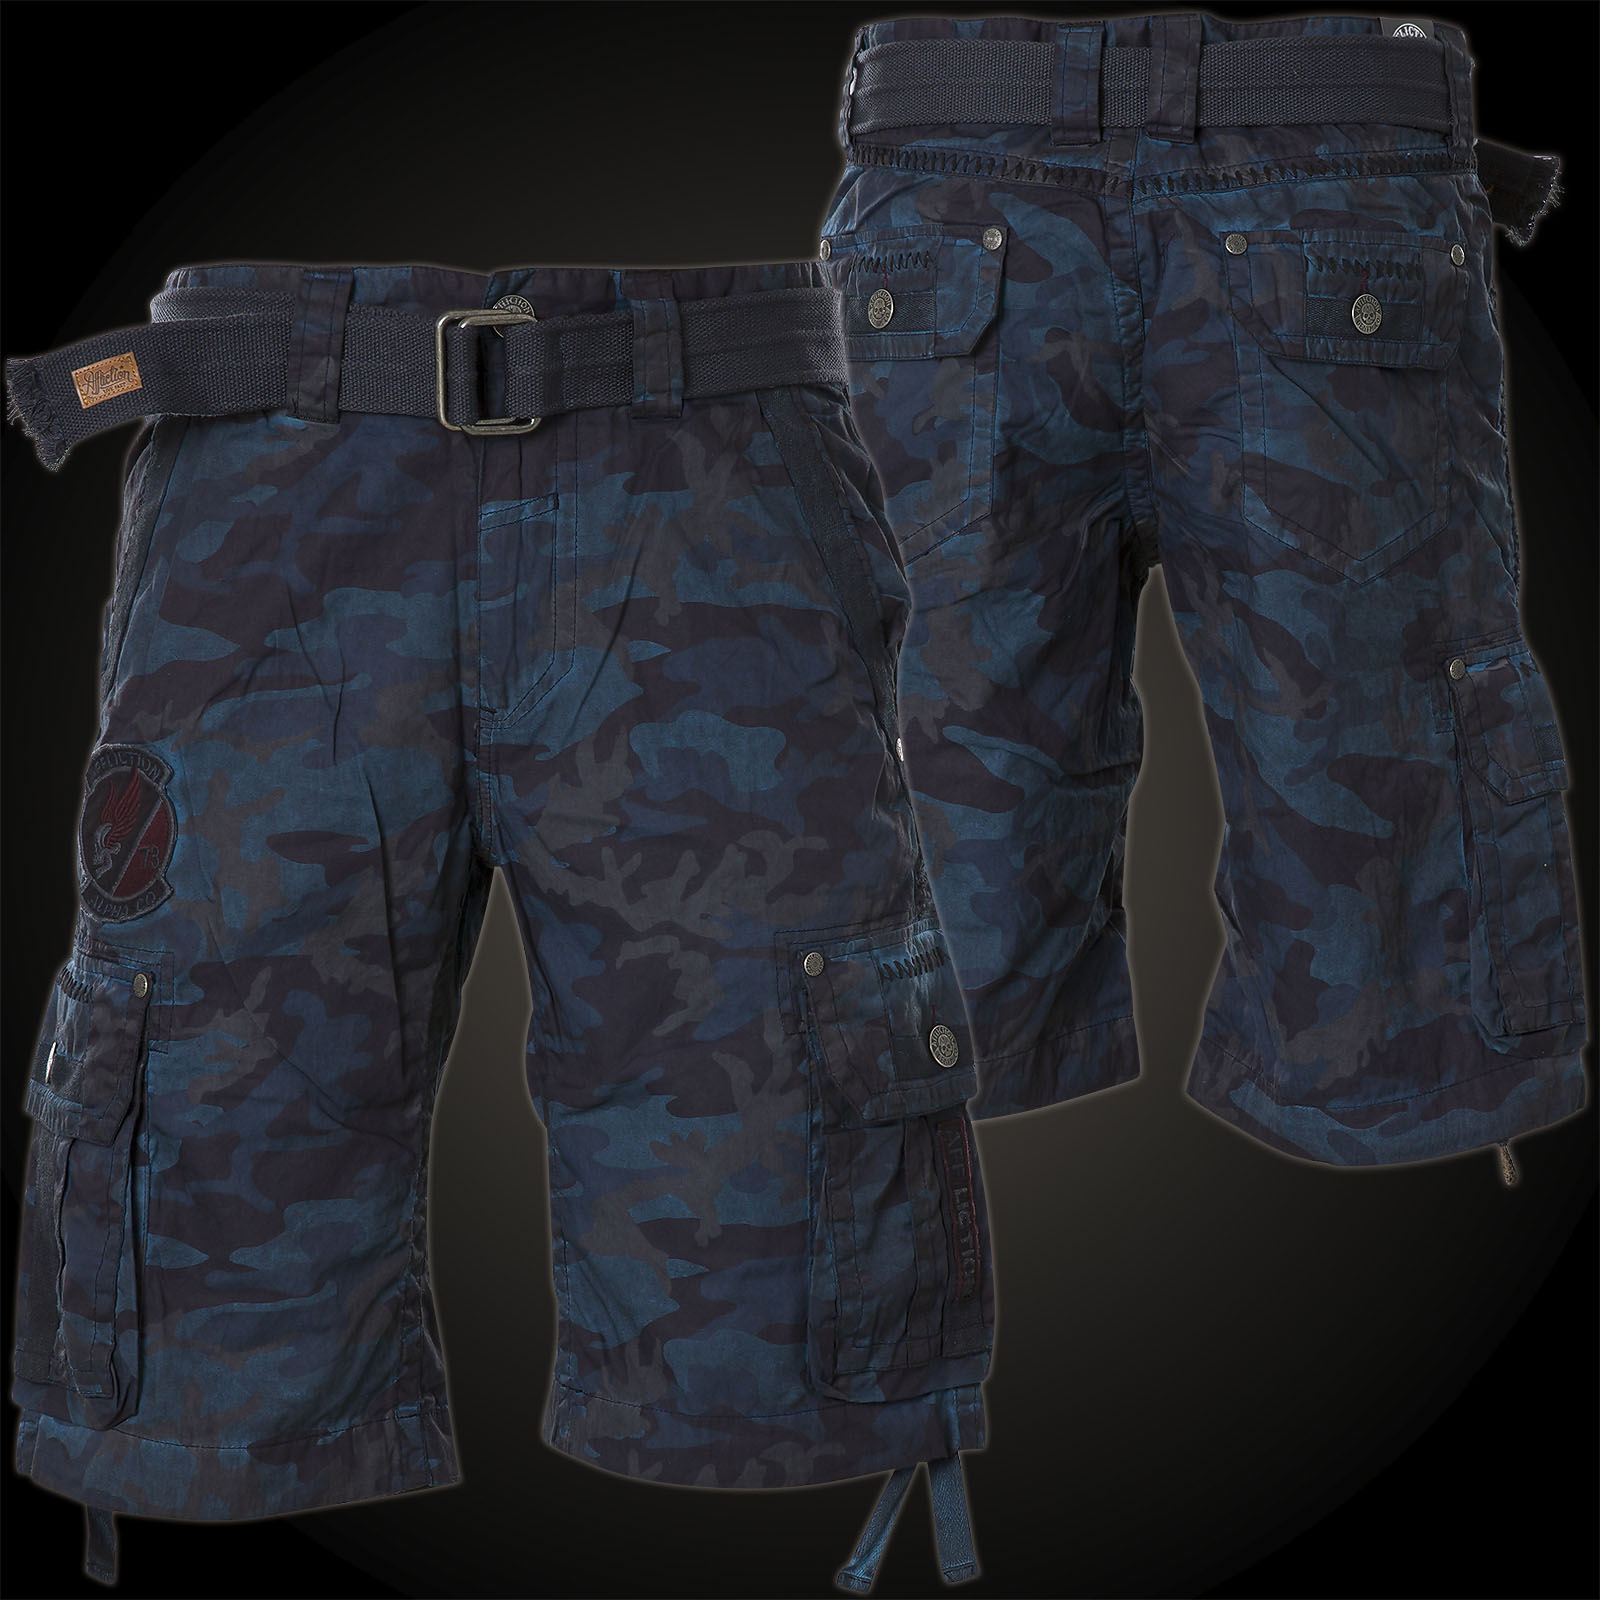 affliction break out cargo shorts with embroidering and